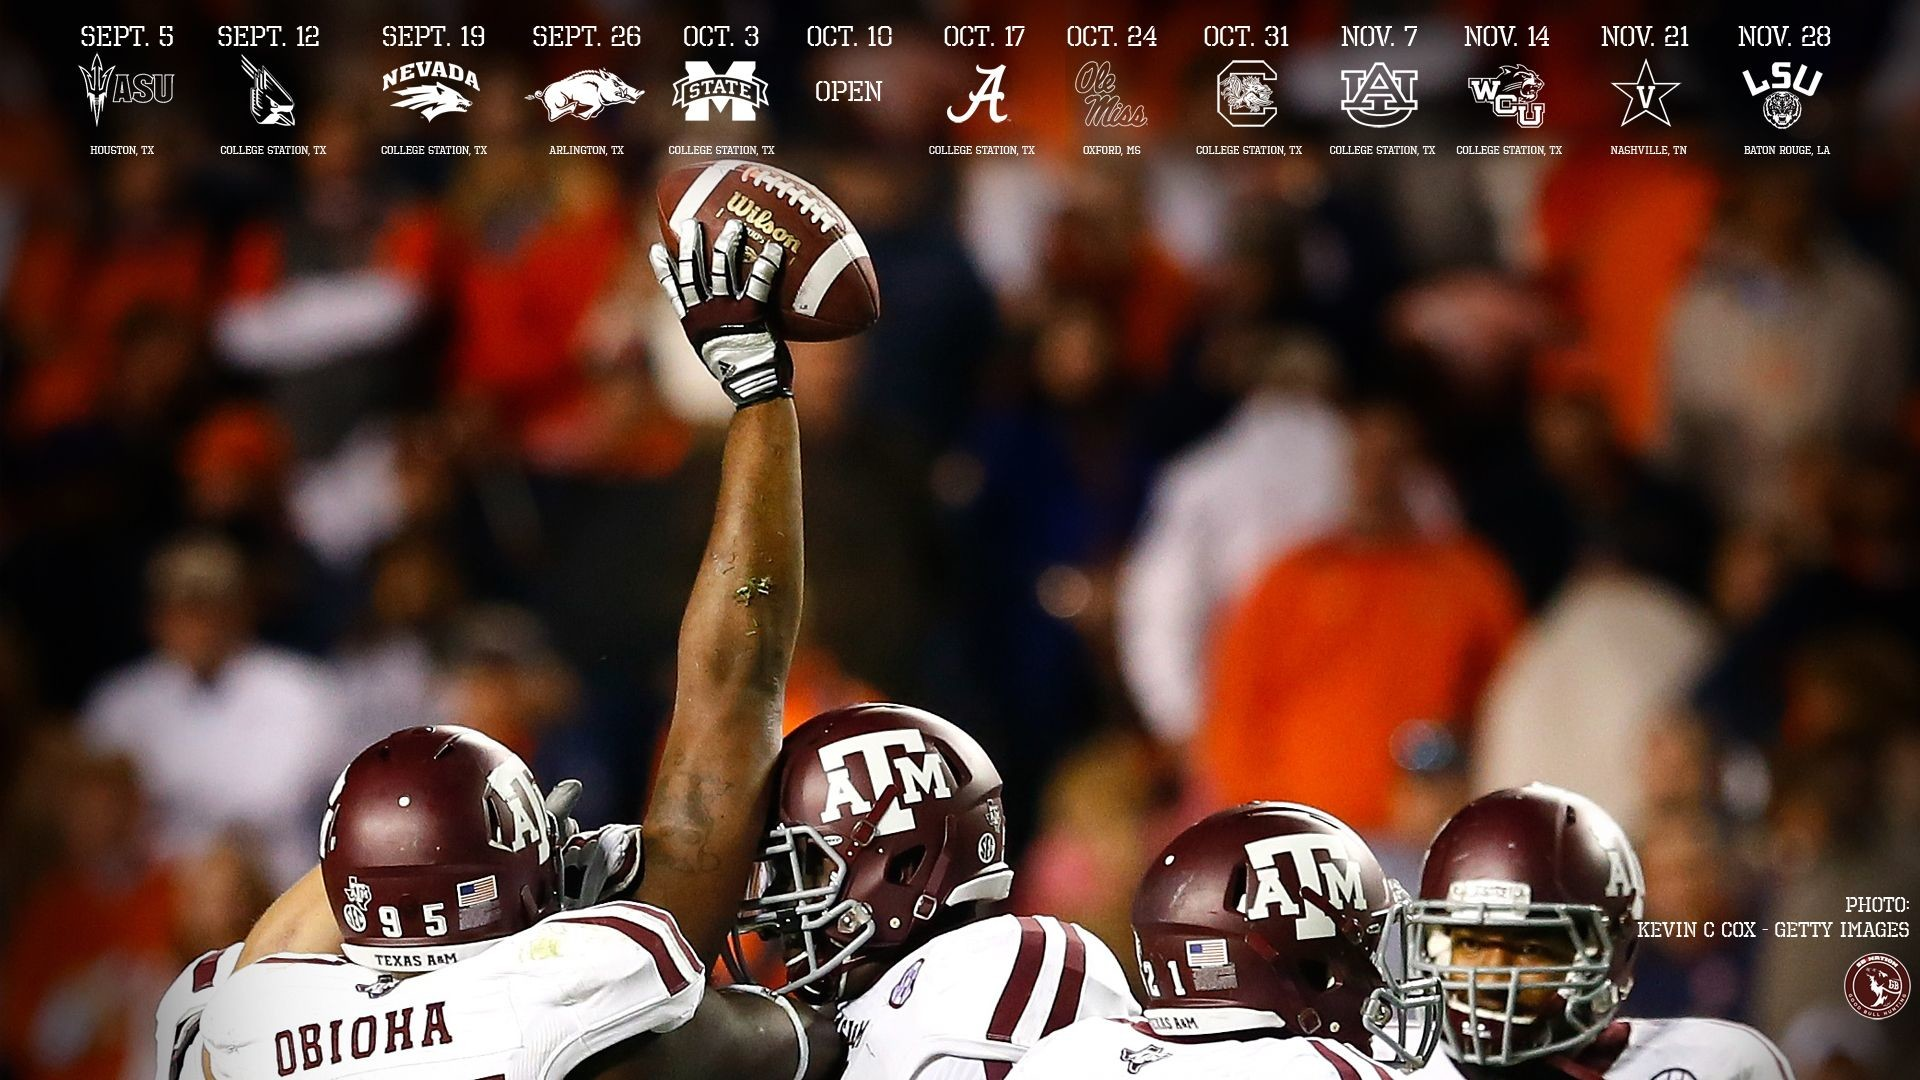 1920x1080 HD Texas Longhorns Football Picture.